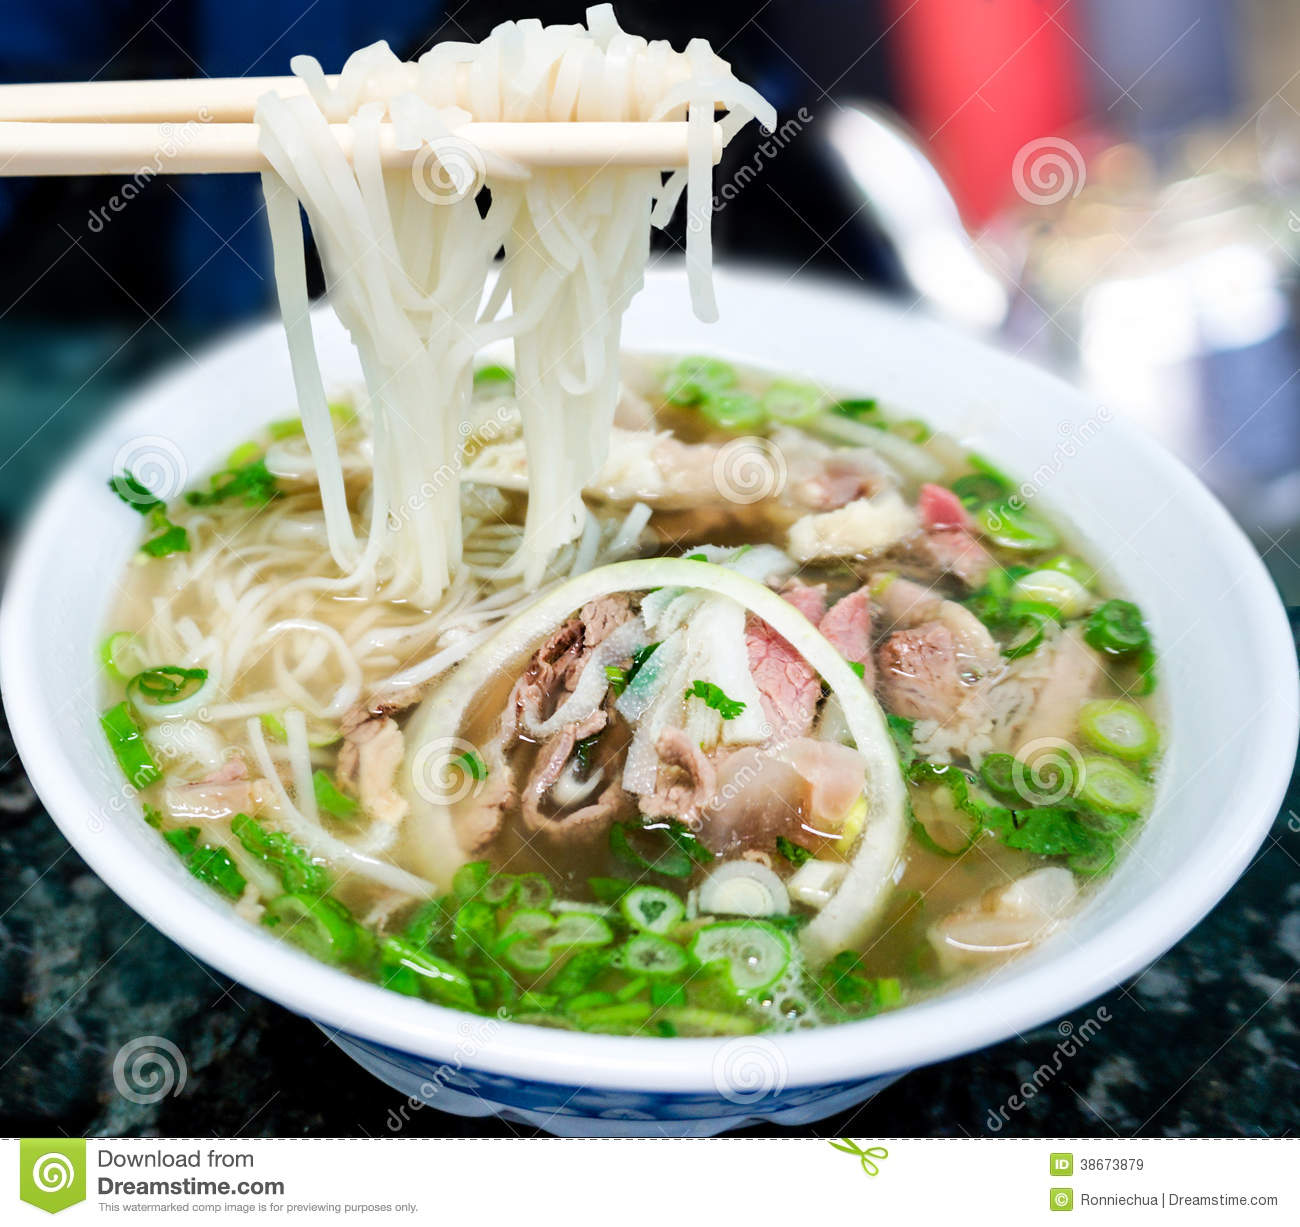 Traditional Vietnamese Pho Beef Noodle Soup Royalty Free Stock Images